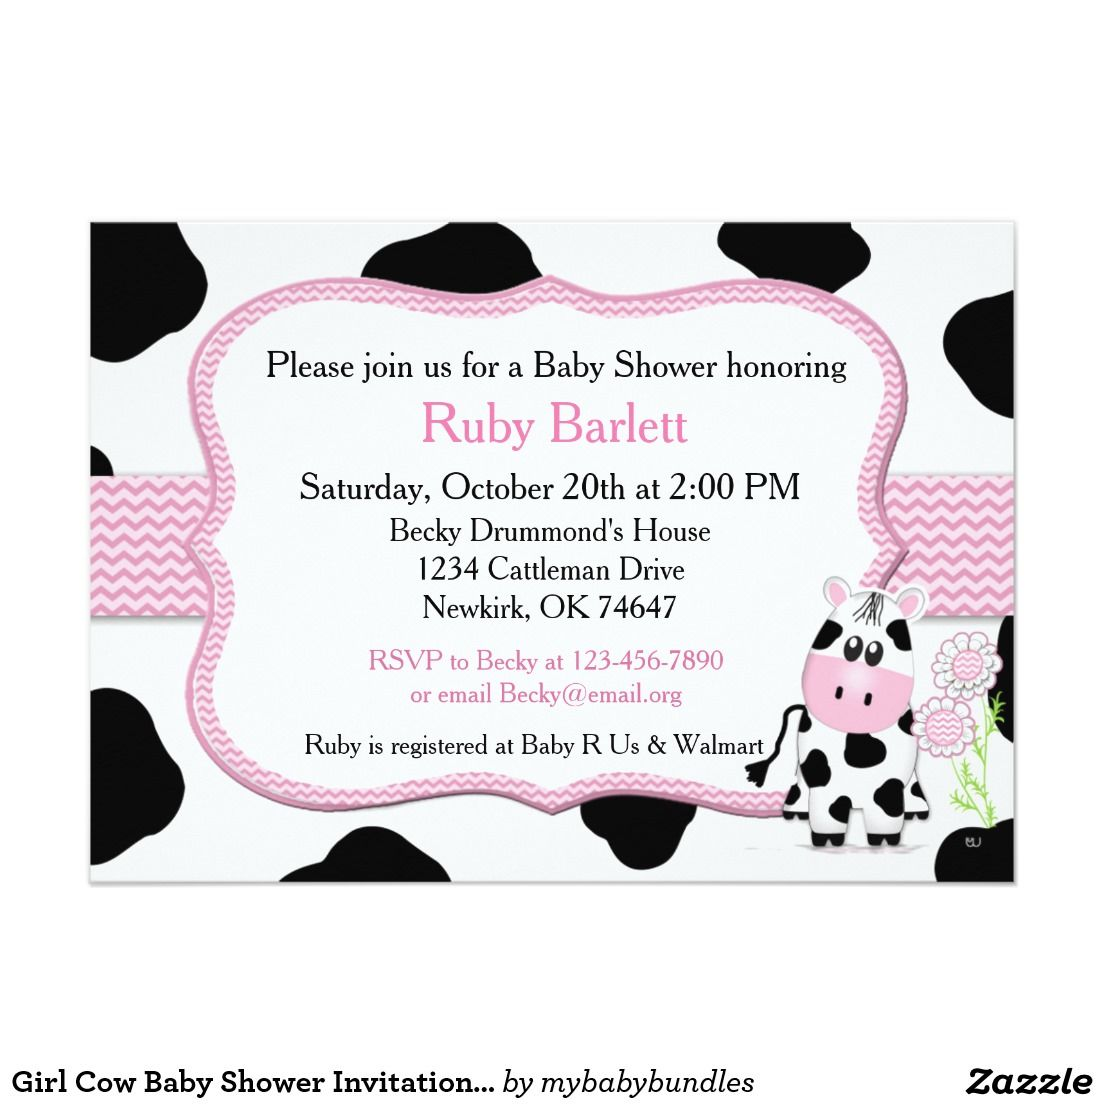 Girl Cow Baby Shower Invitation with Chevron Print | Cow baby ...